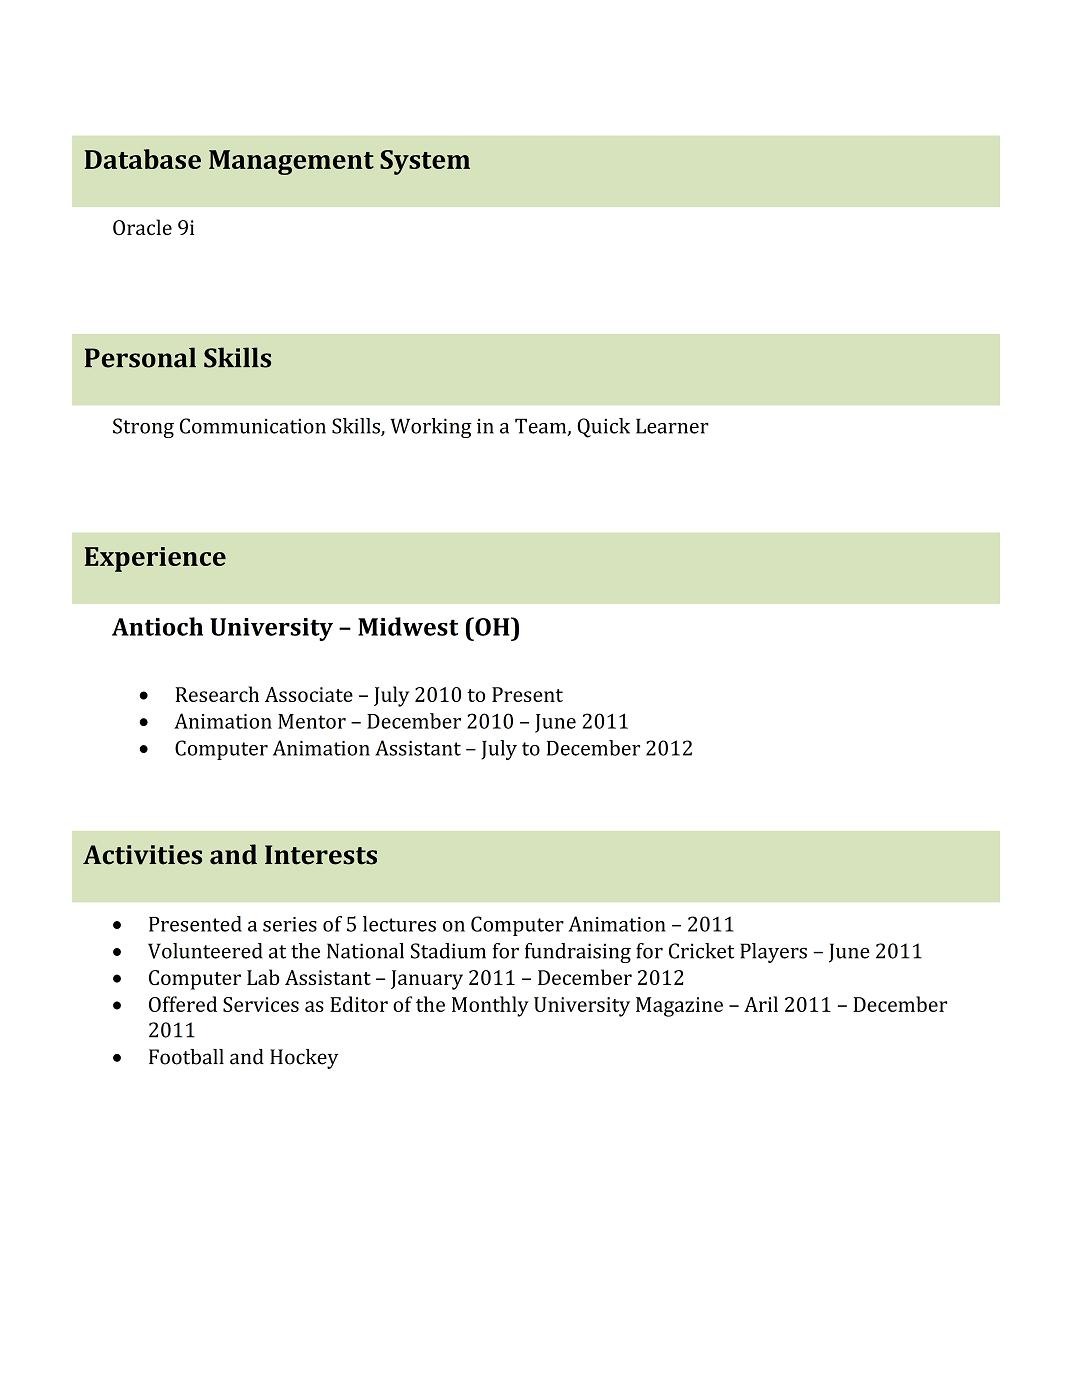 Sample Resume For Company Secretary Fresher Online assignments for symbiosis Best custom paper writing simple 22